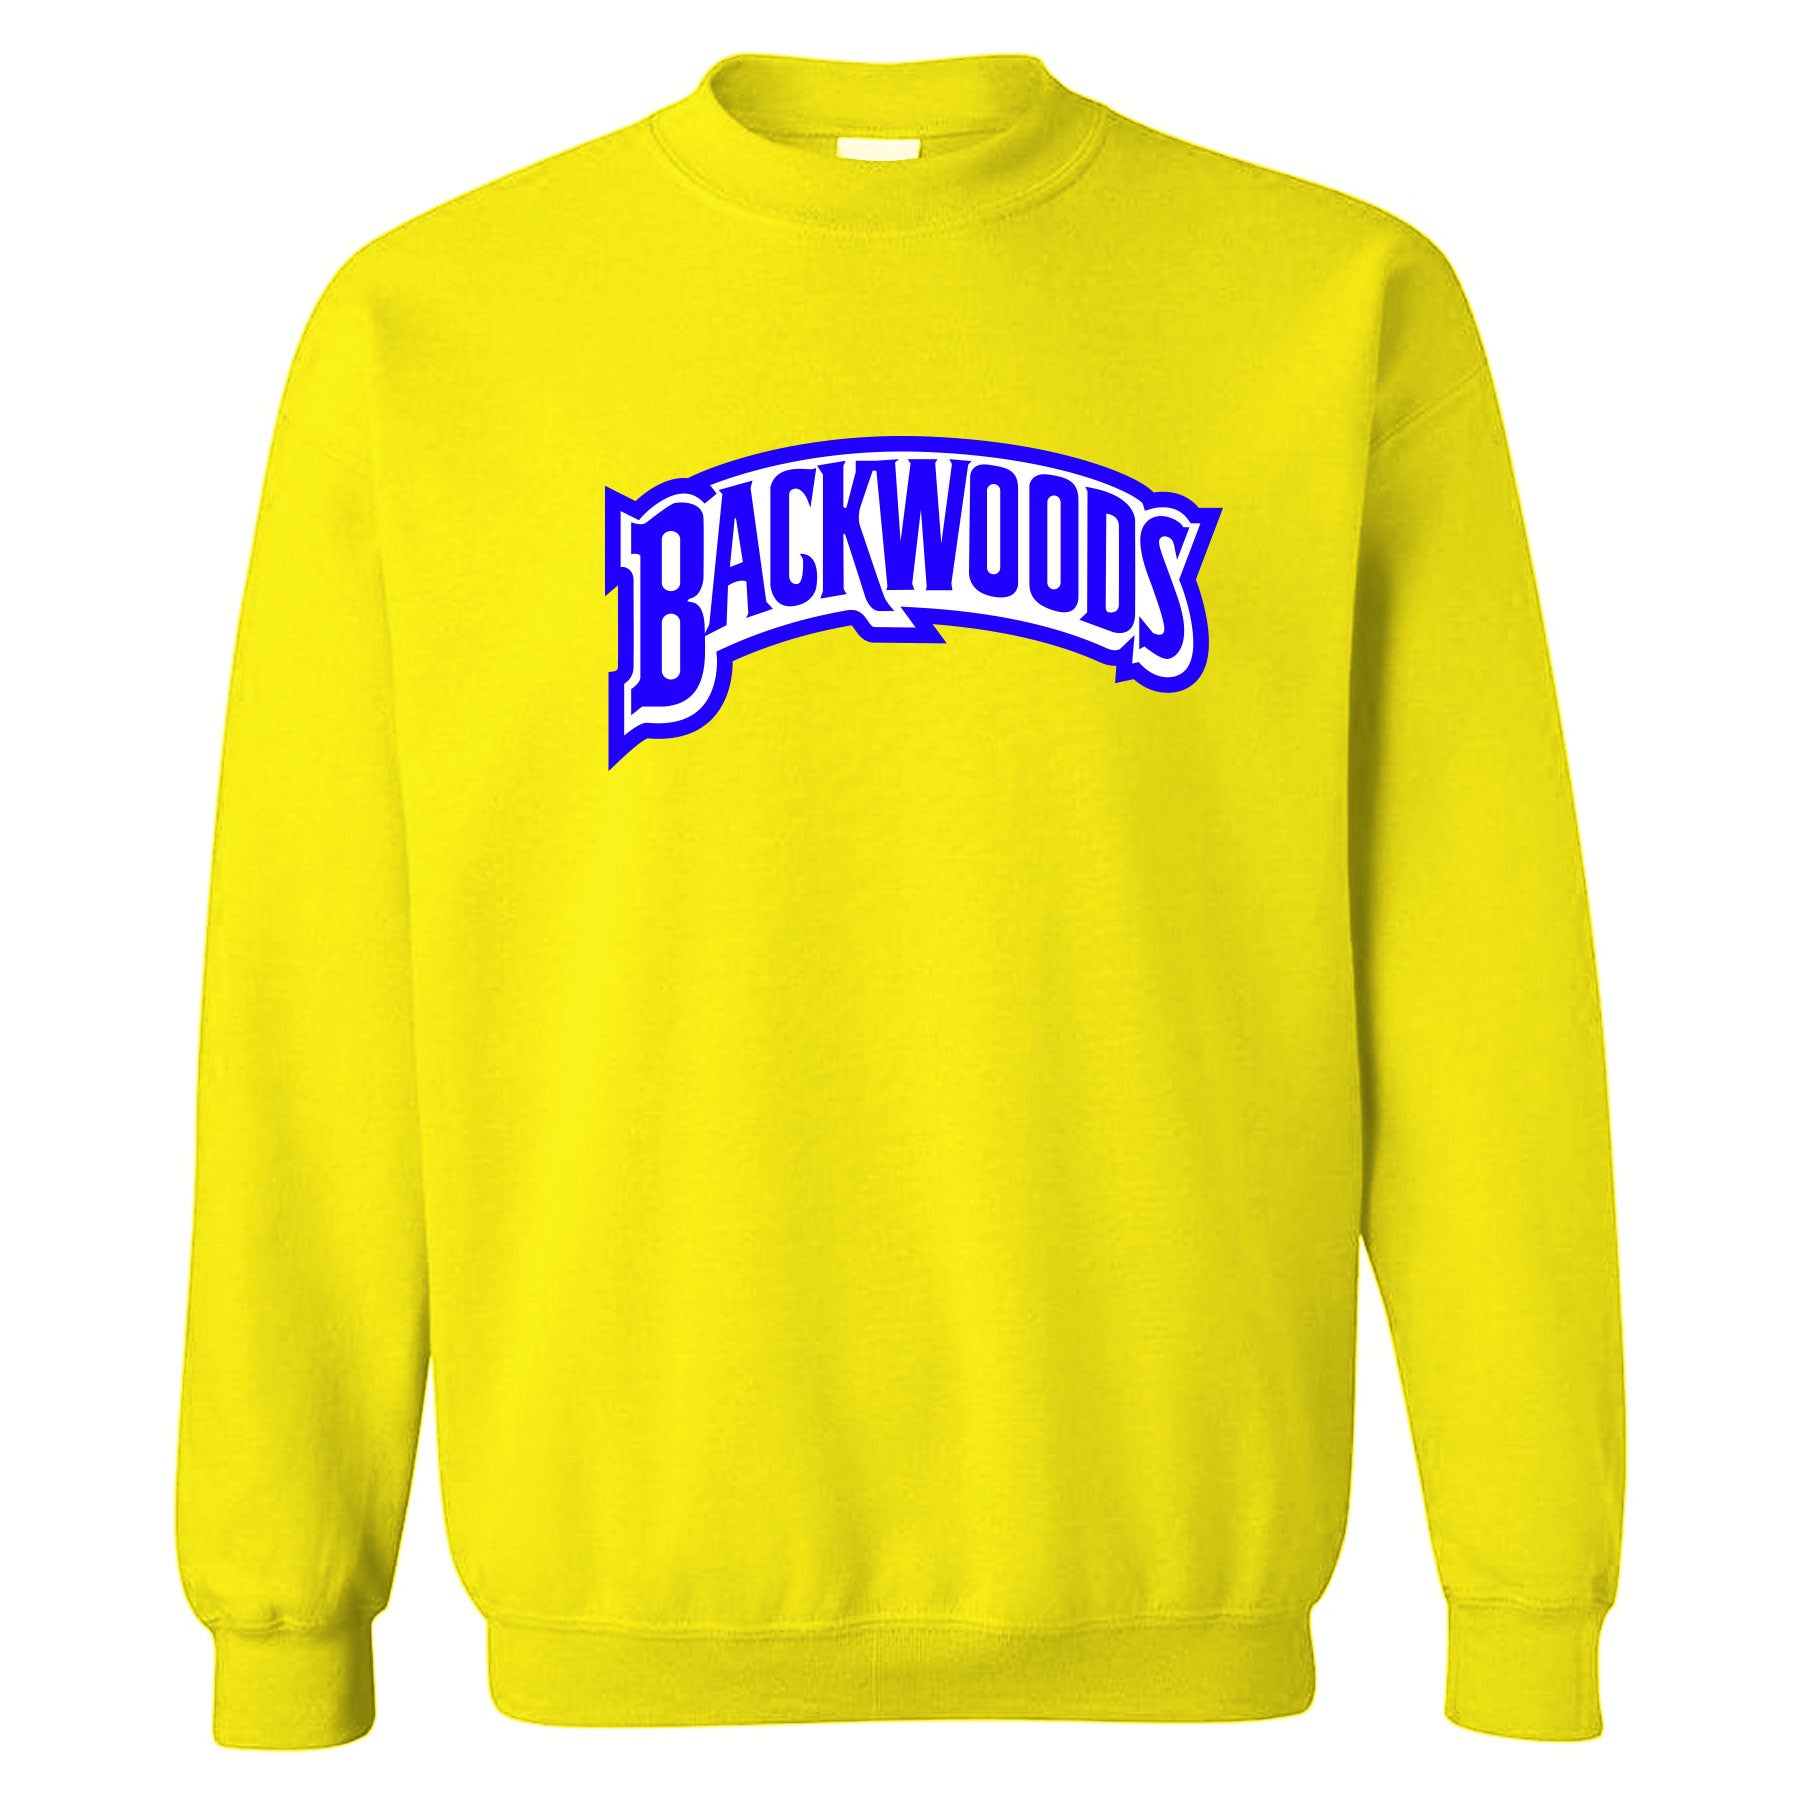 1366cf75bc0f ... Backwoods Yellow Crewneck  Printed on the front of the Air Jordan 5  Laney Alternate JSP sneaker matching crewneck is